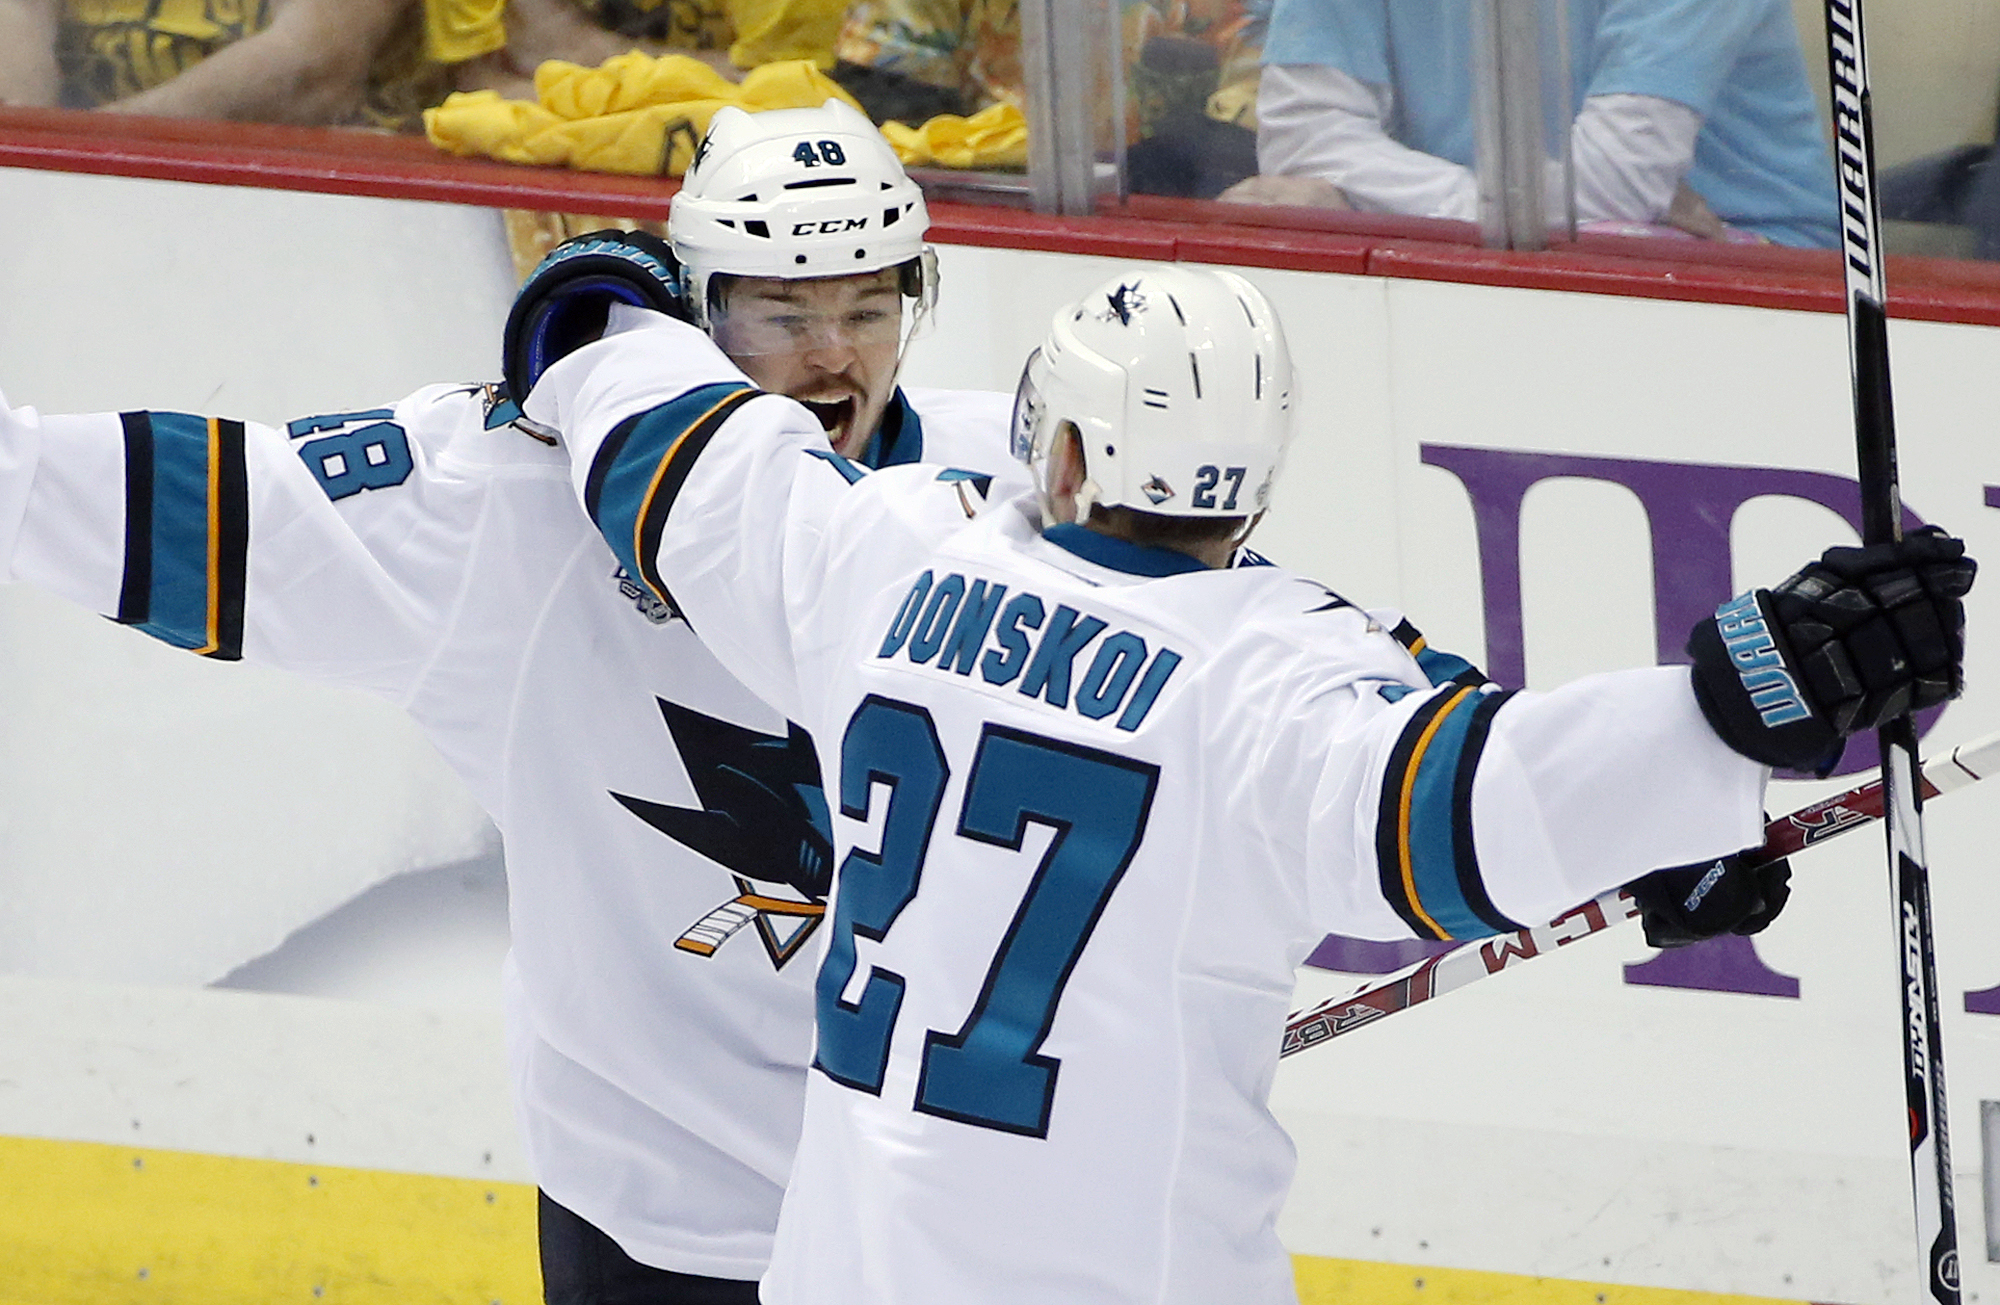 San Jose Sharks' Tomas Hertl, left, celebrates his goal against the Pittsburgh Penguins with Joonas Donskoi during the second period in Game 1 of the Stanley Cup final series Monday, May 30, 2016, in Pittsburgh. (AP Photo/Gene J. Puskar)